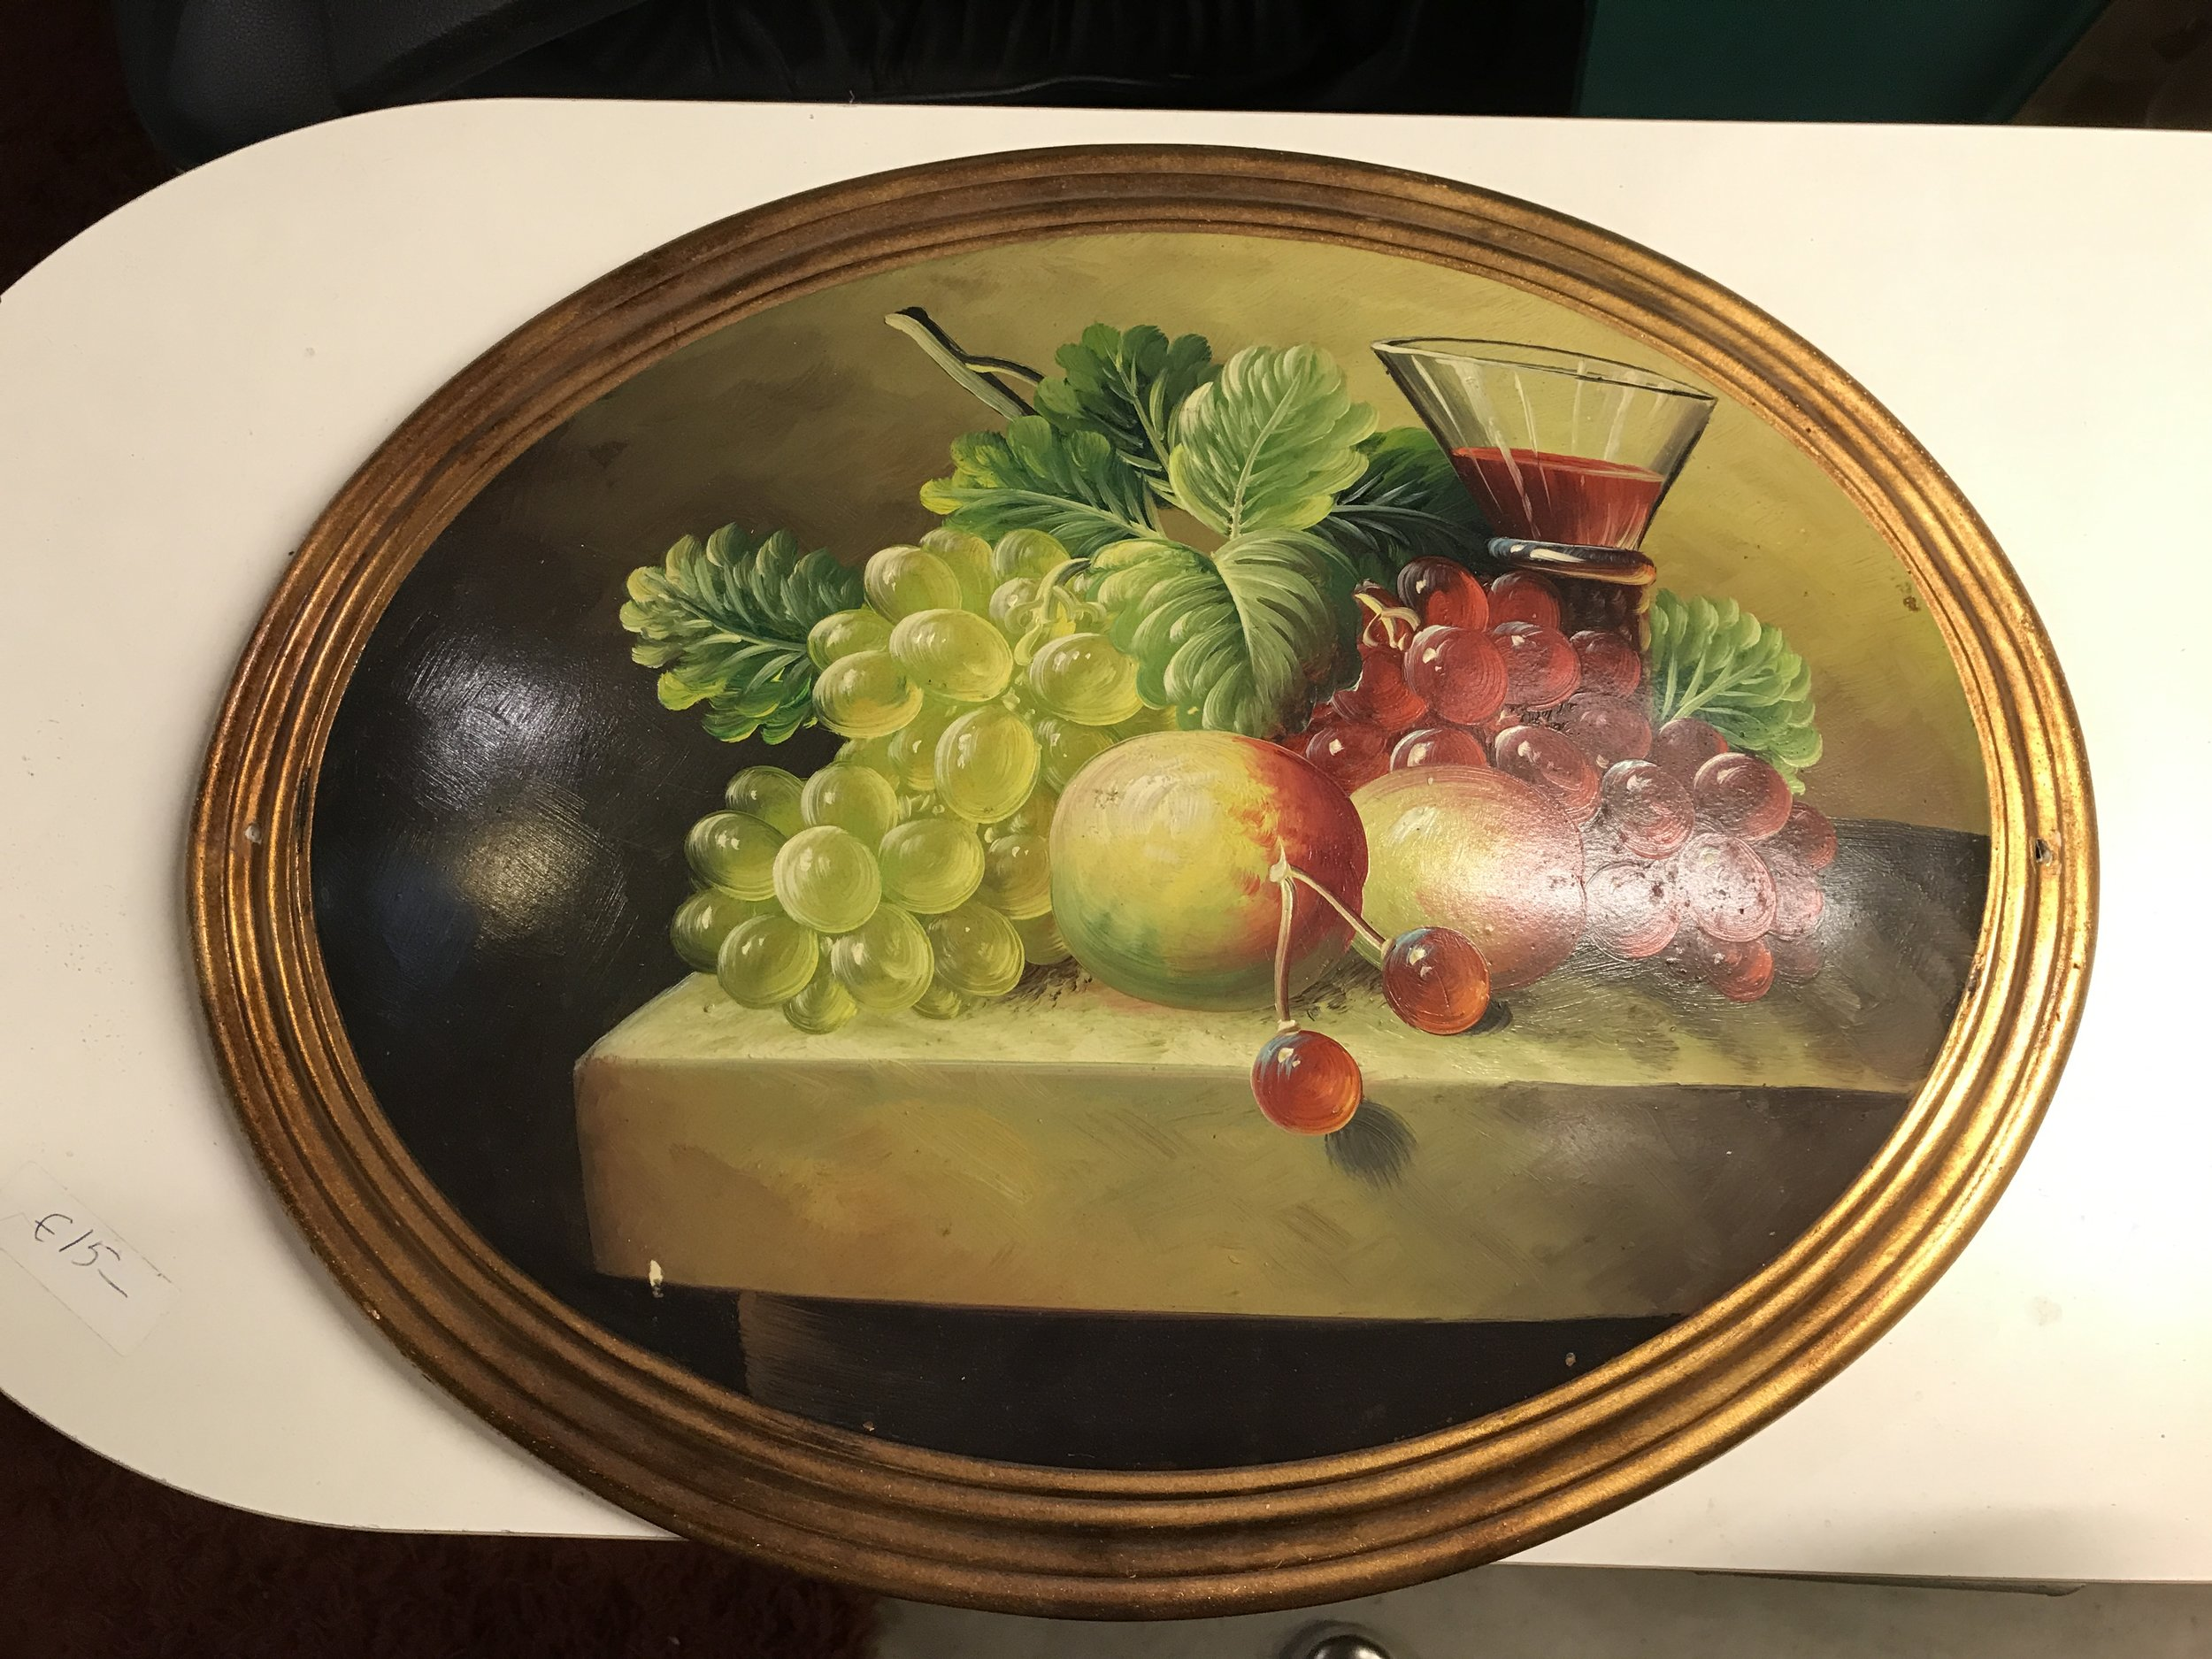 Gorgeous old paintings that are padded underneath to give the curved finish along with a satin seal.